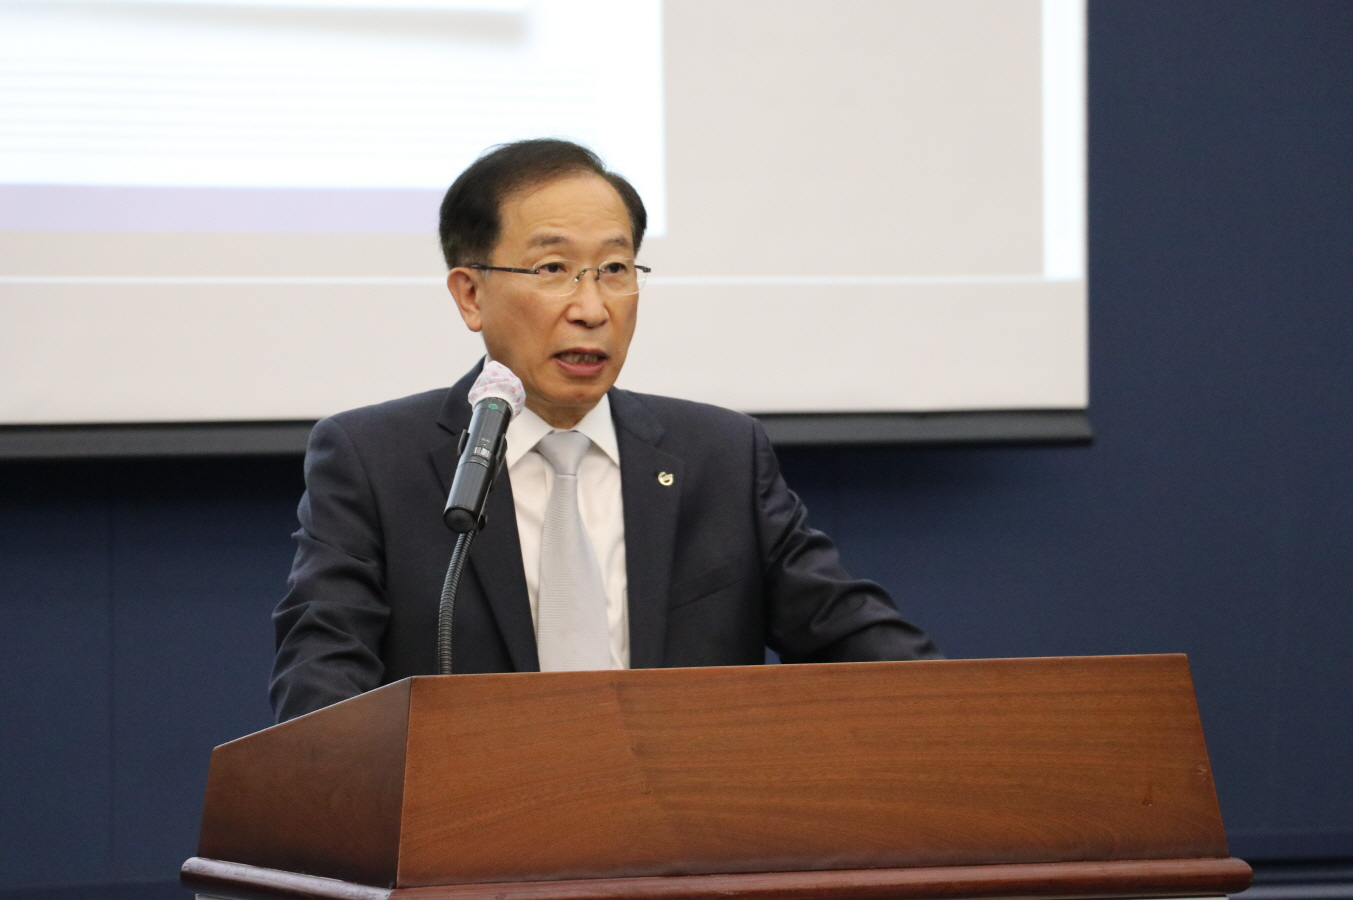 President Yang Kuk of DGIST who attended the conference held in DGIST on Friday, June 5 is giving an opening remark.